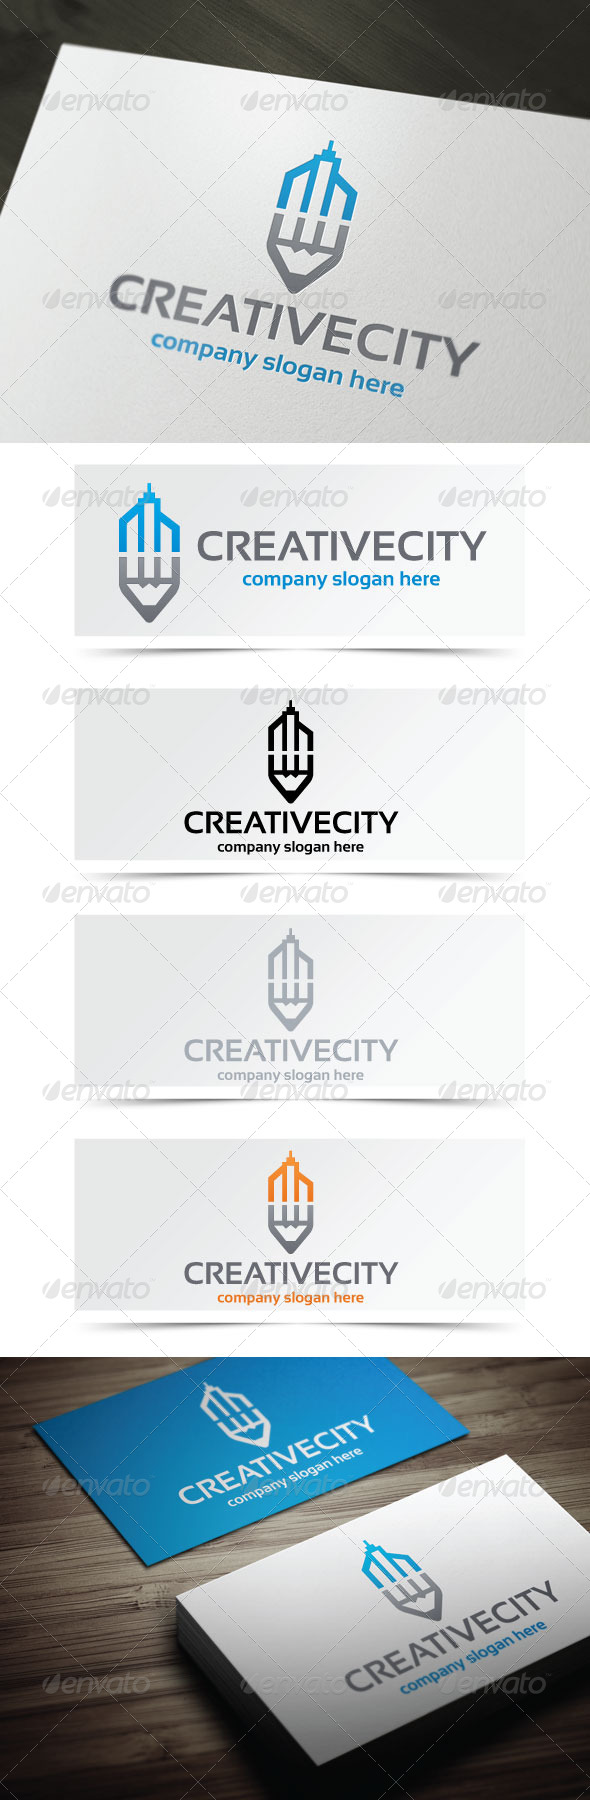 GraphicRiver Creative City 4803781